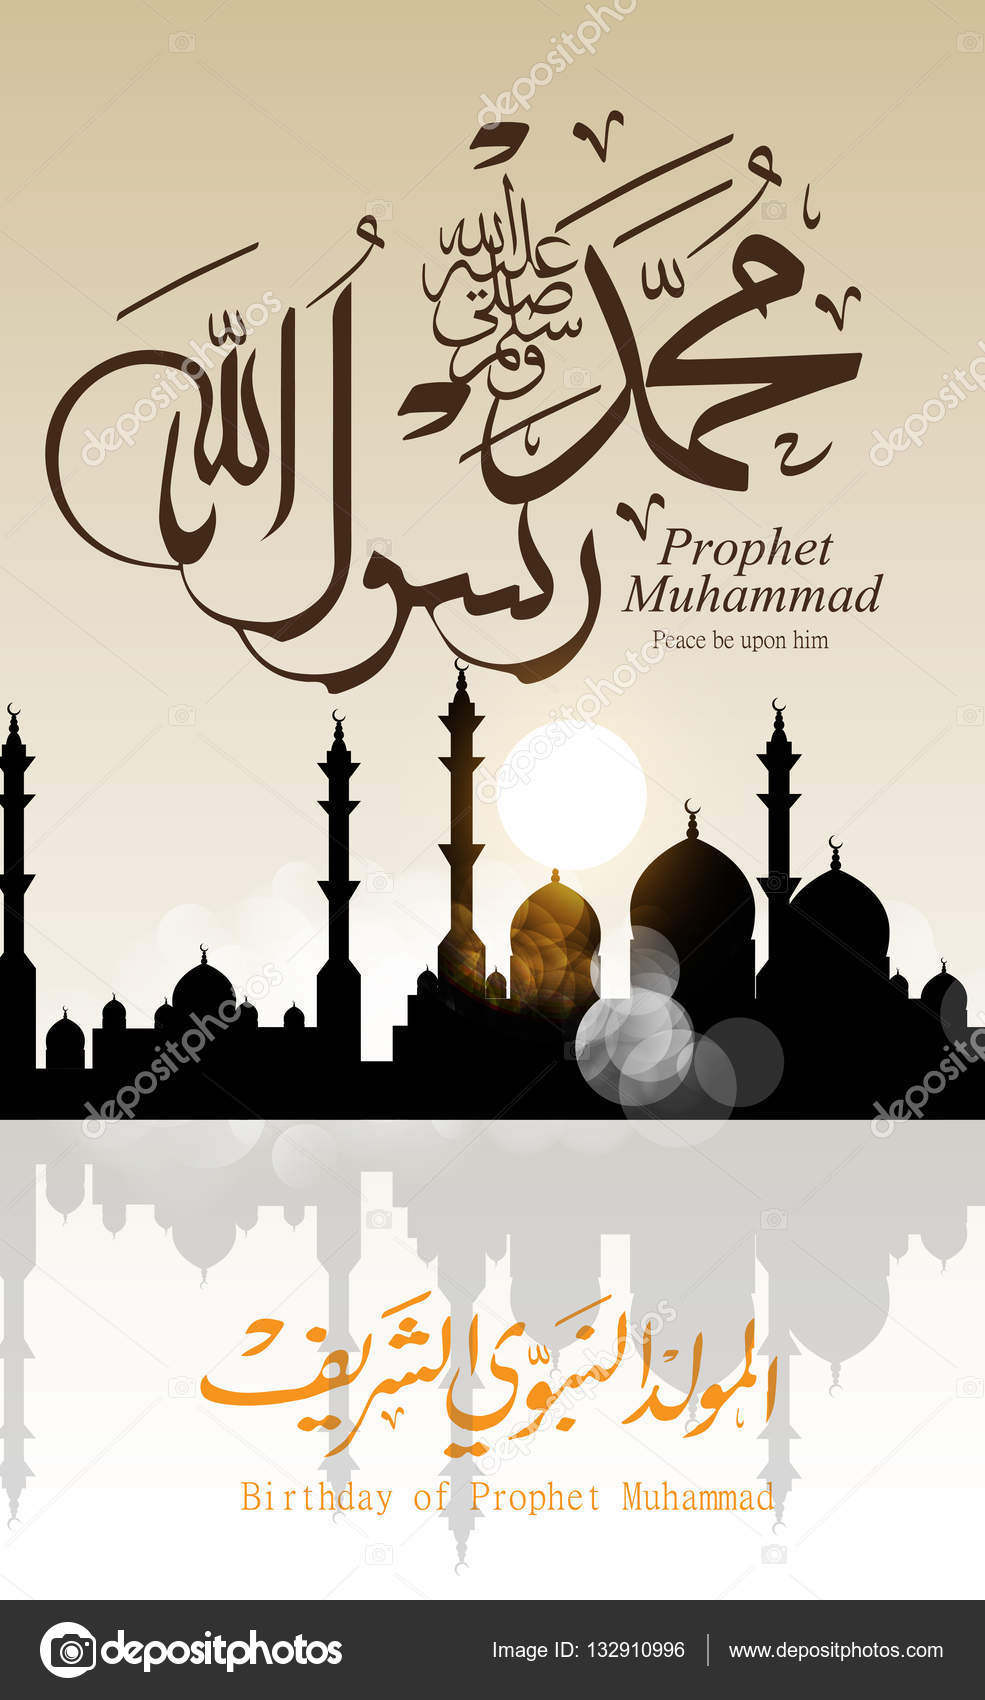 Greeting Cards On The Occasion Of The Birthday Of The Prophet